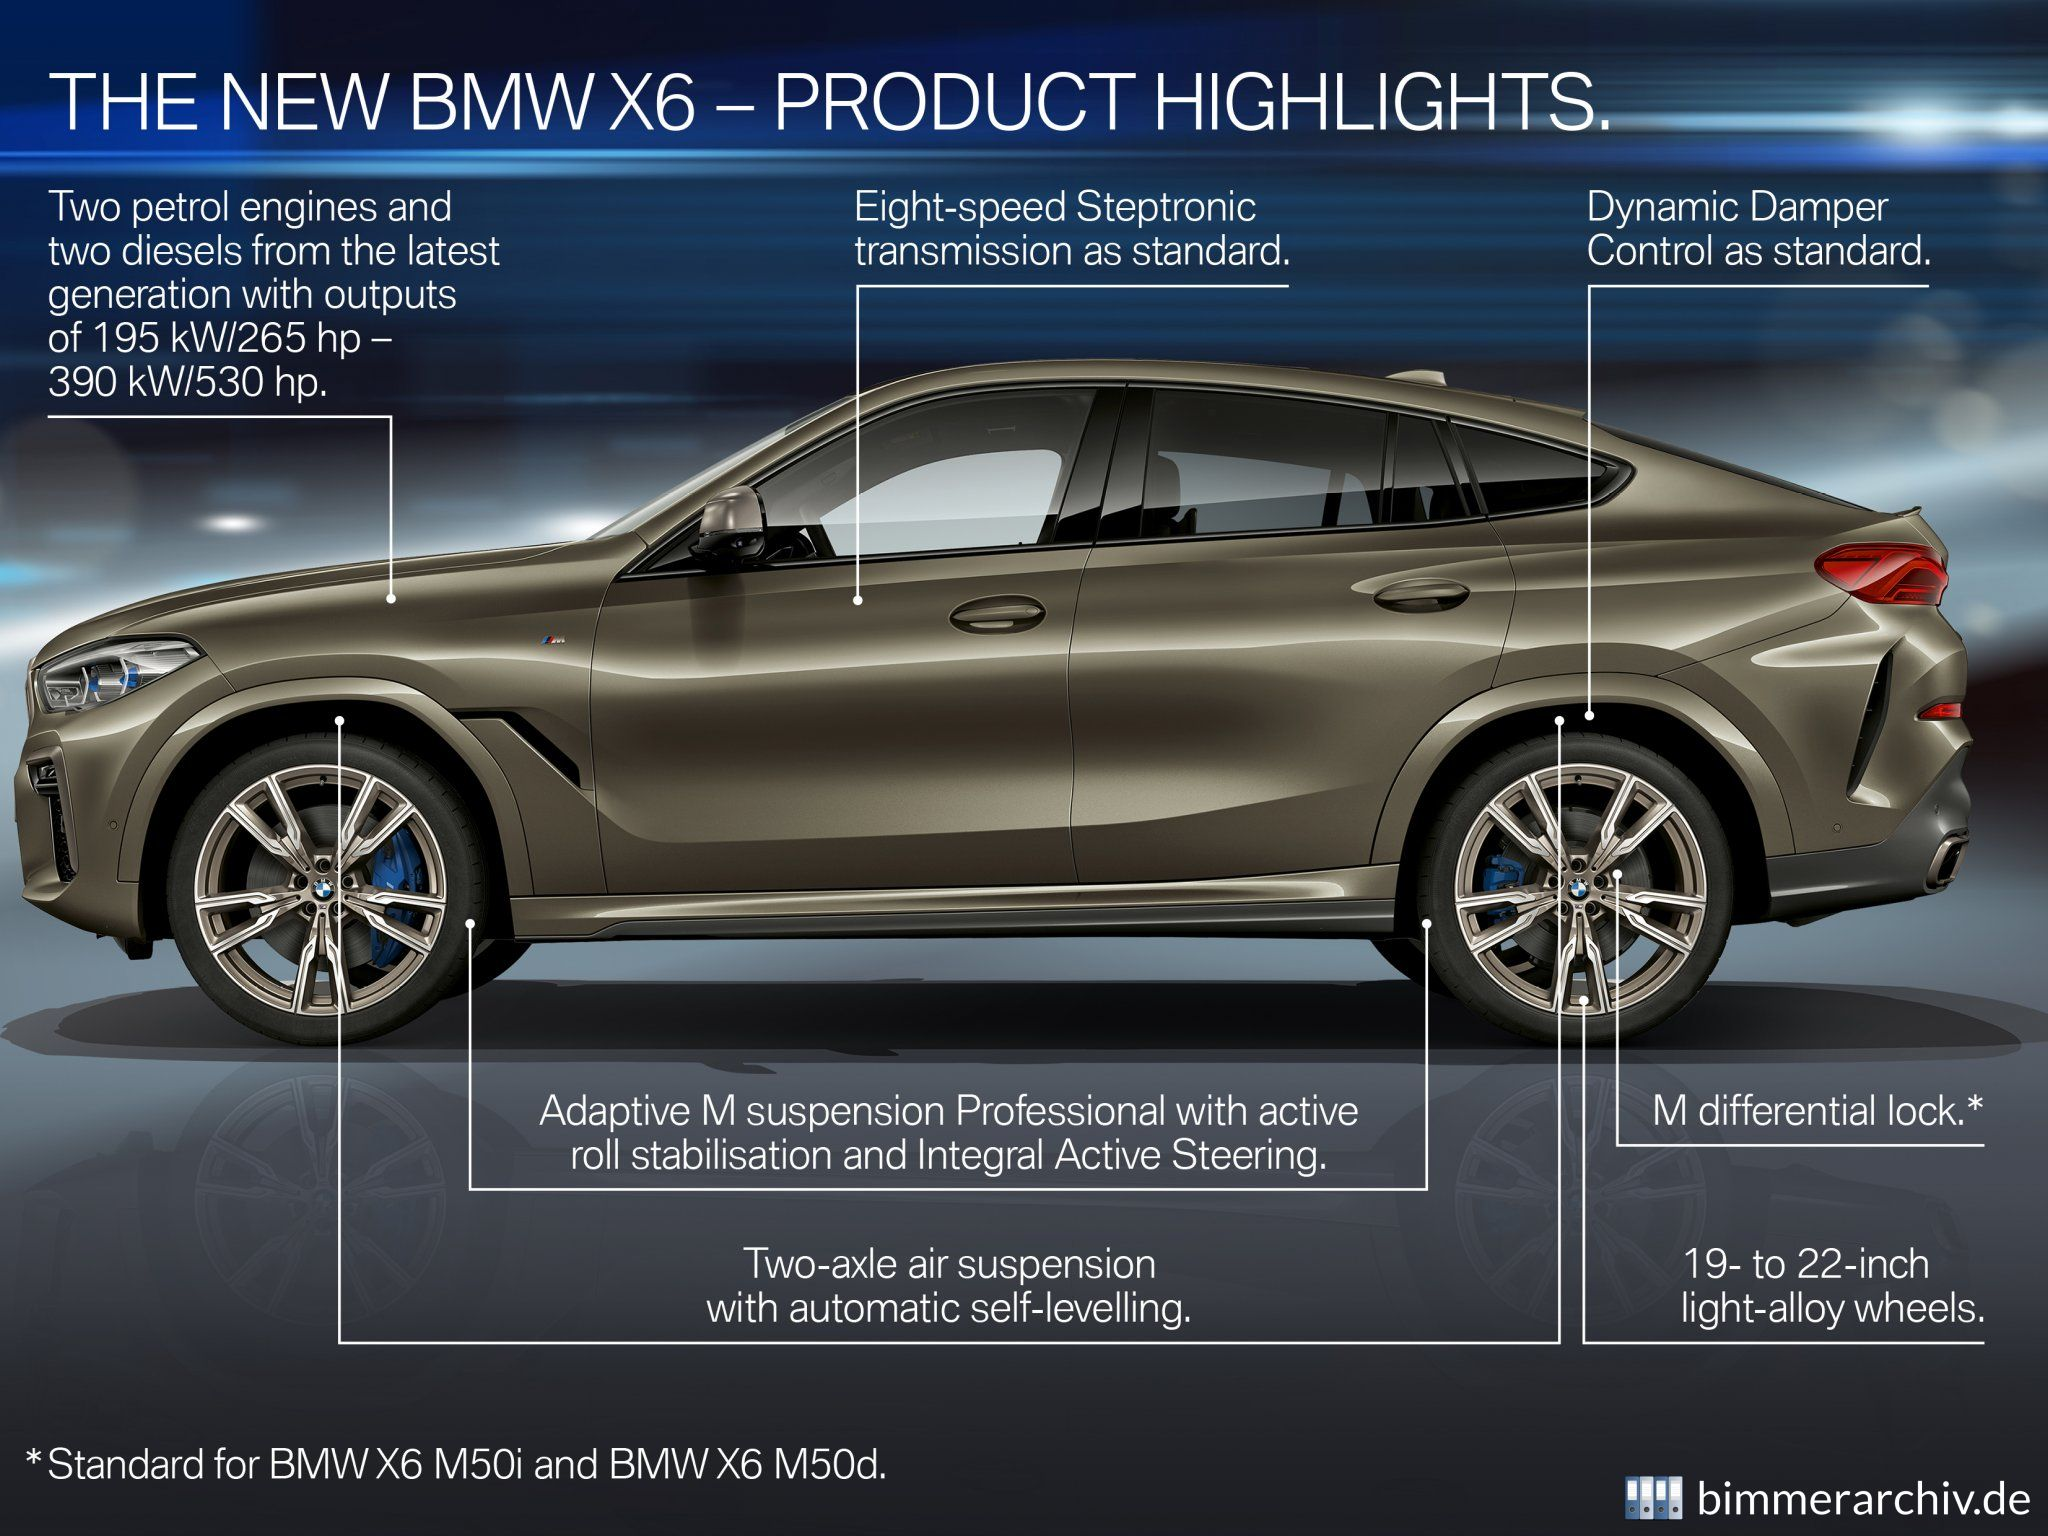 BMW X6 - Highlights